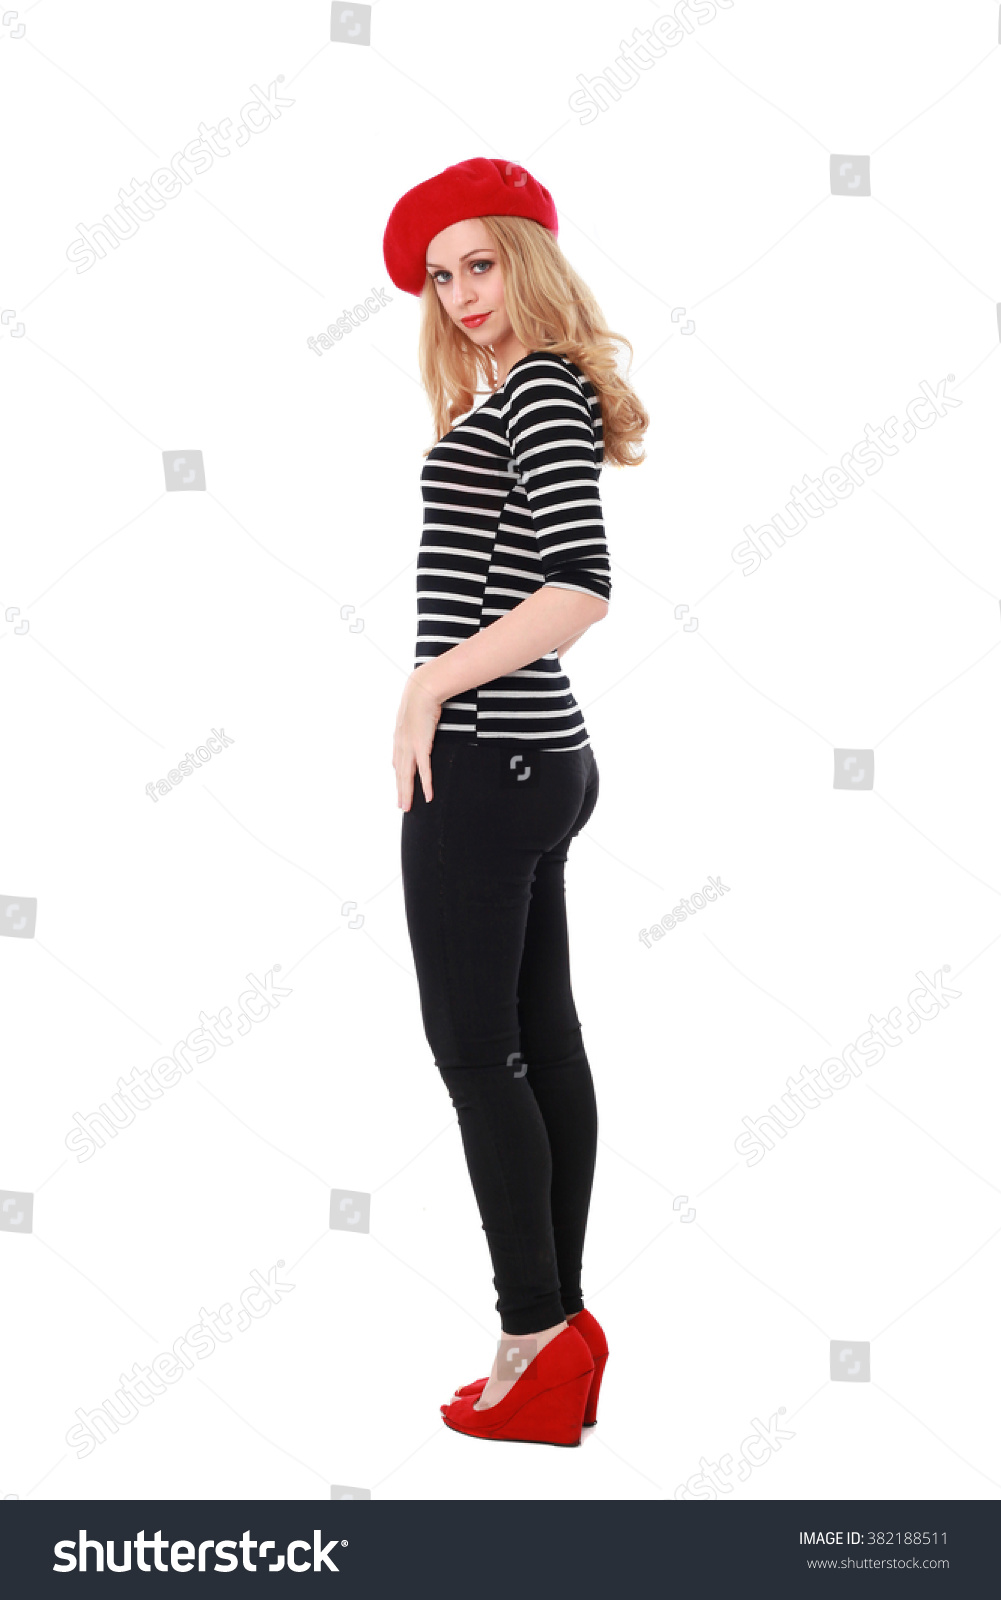 Royalty-free Blonde woman wearing stereotypical ...